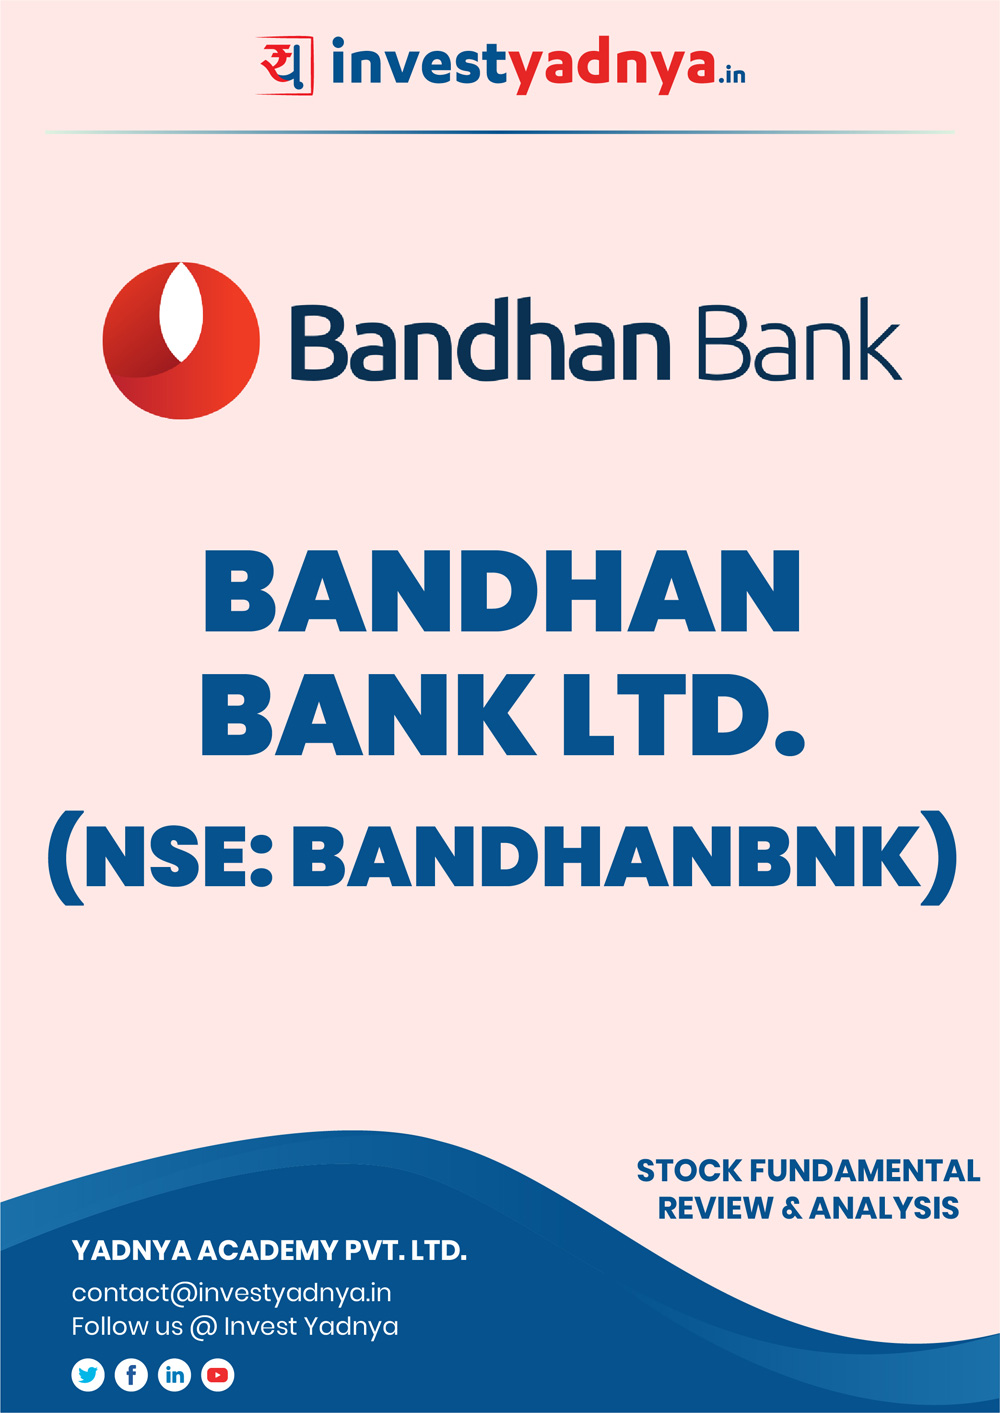 This e-book contains in-depth fundamental analysis of Bandhan Bank considering both Financial and Equity Research Parameters. It reviews the company, industry competitors, shareholding pattern, financials, and annual performance. ✔ Detailed Research ✔ Quality Reports